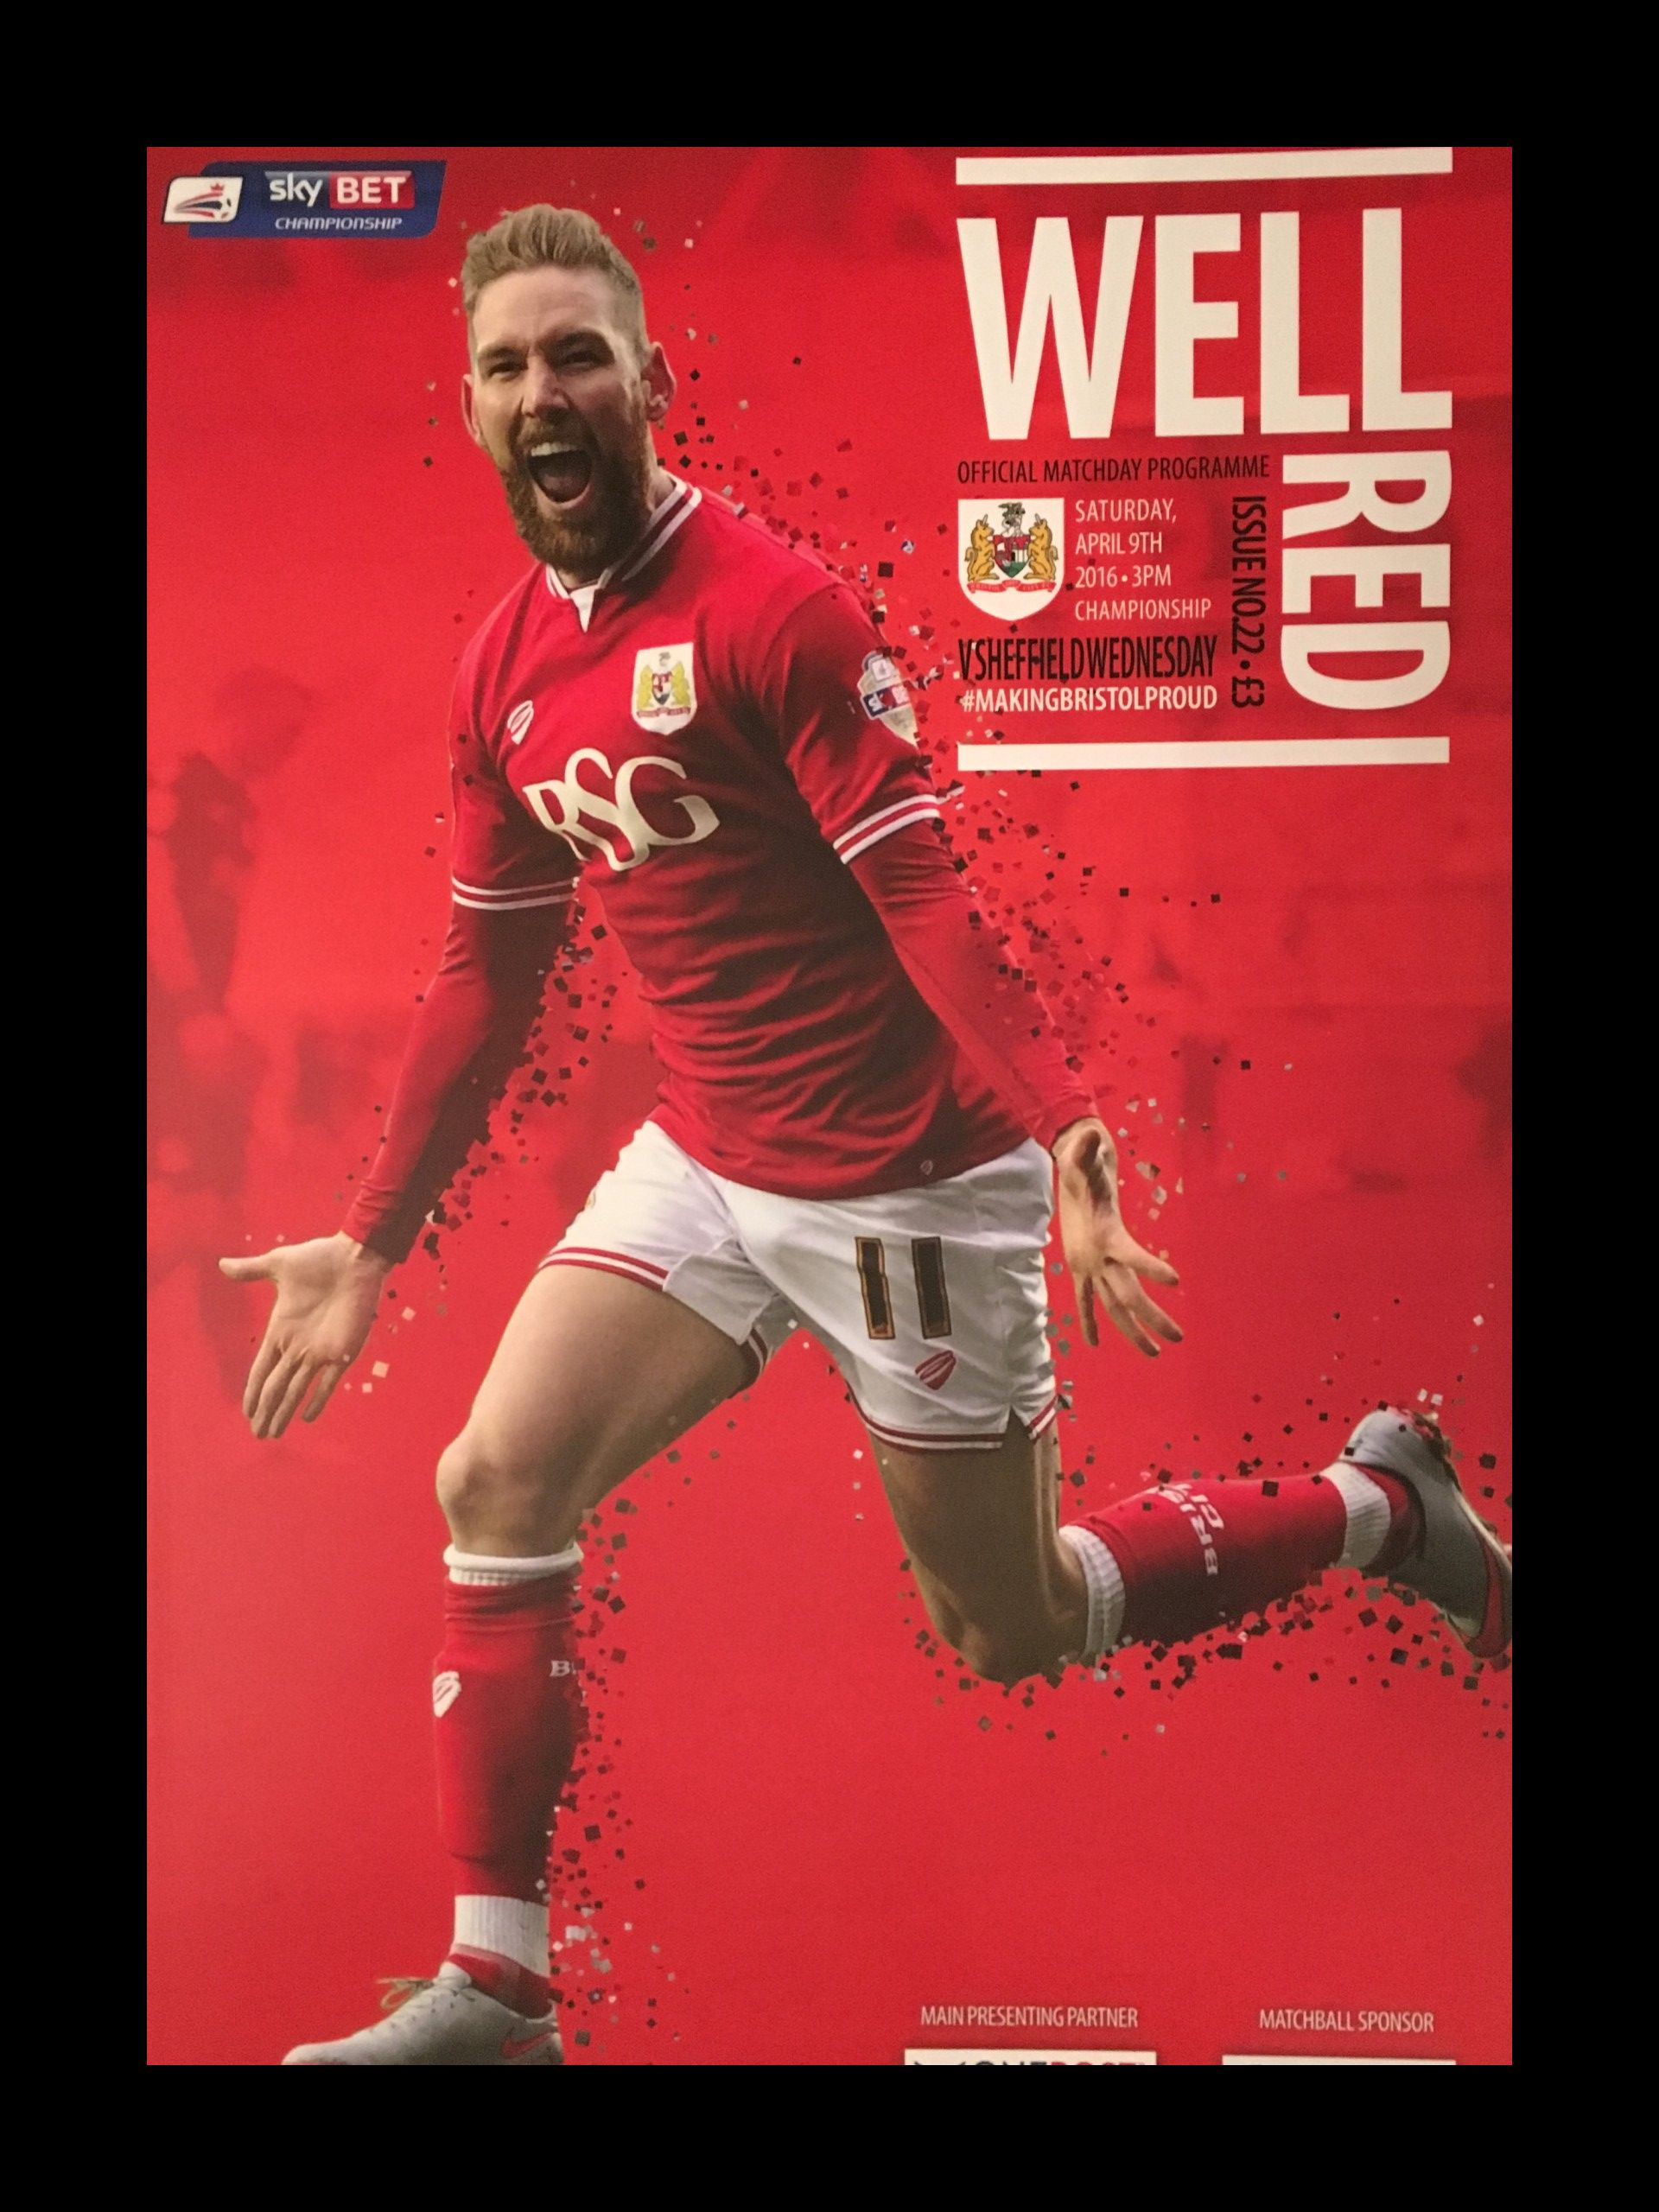 Bristol City v Sheffield Wednesday 09-04-2016 Programme